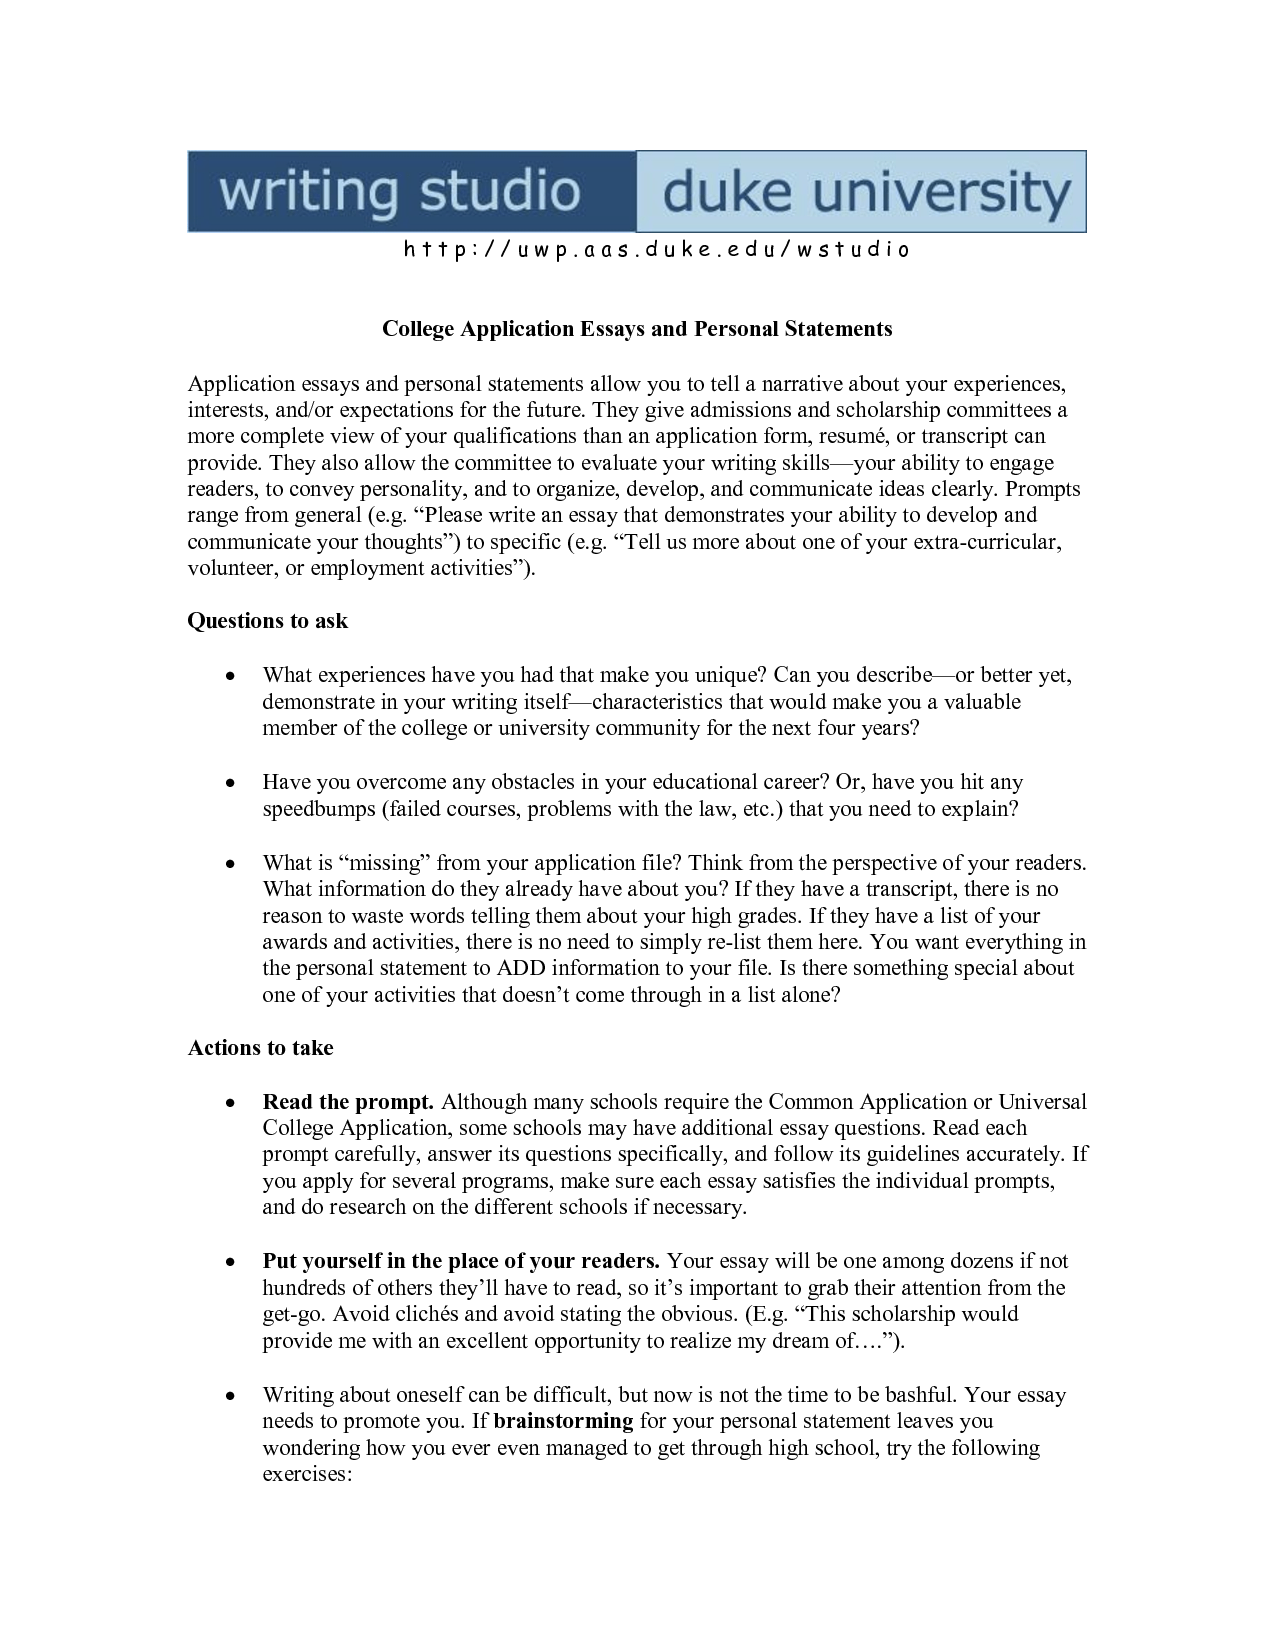 Stanford University Cv Format Andrej Karpathy Academic Website Stanford  University Resume Template For University Admission Essay